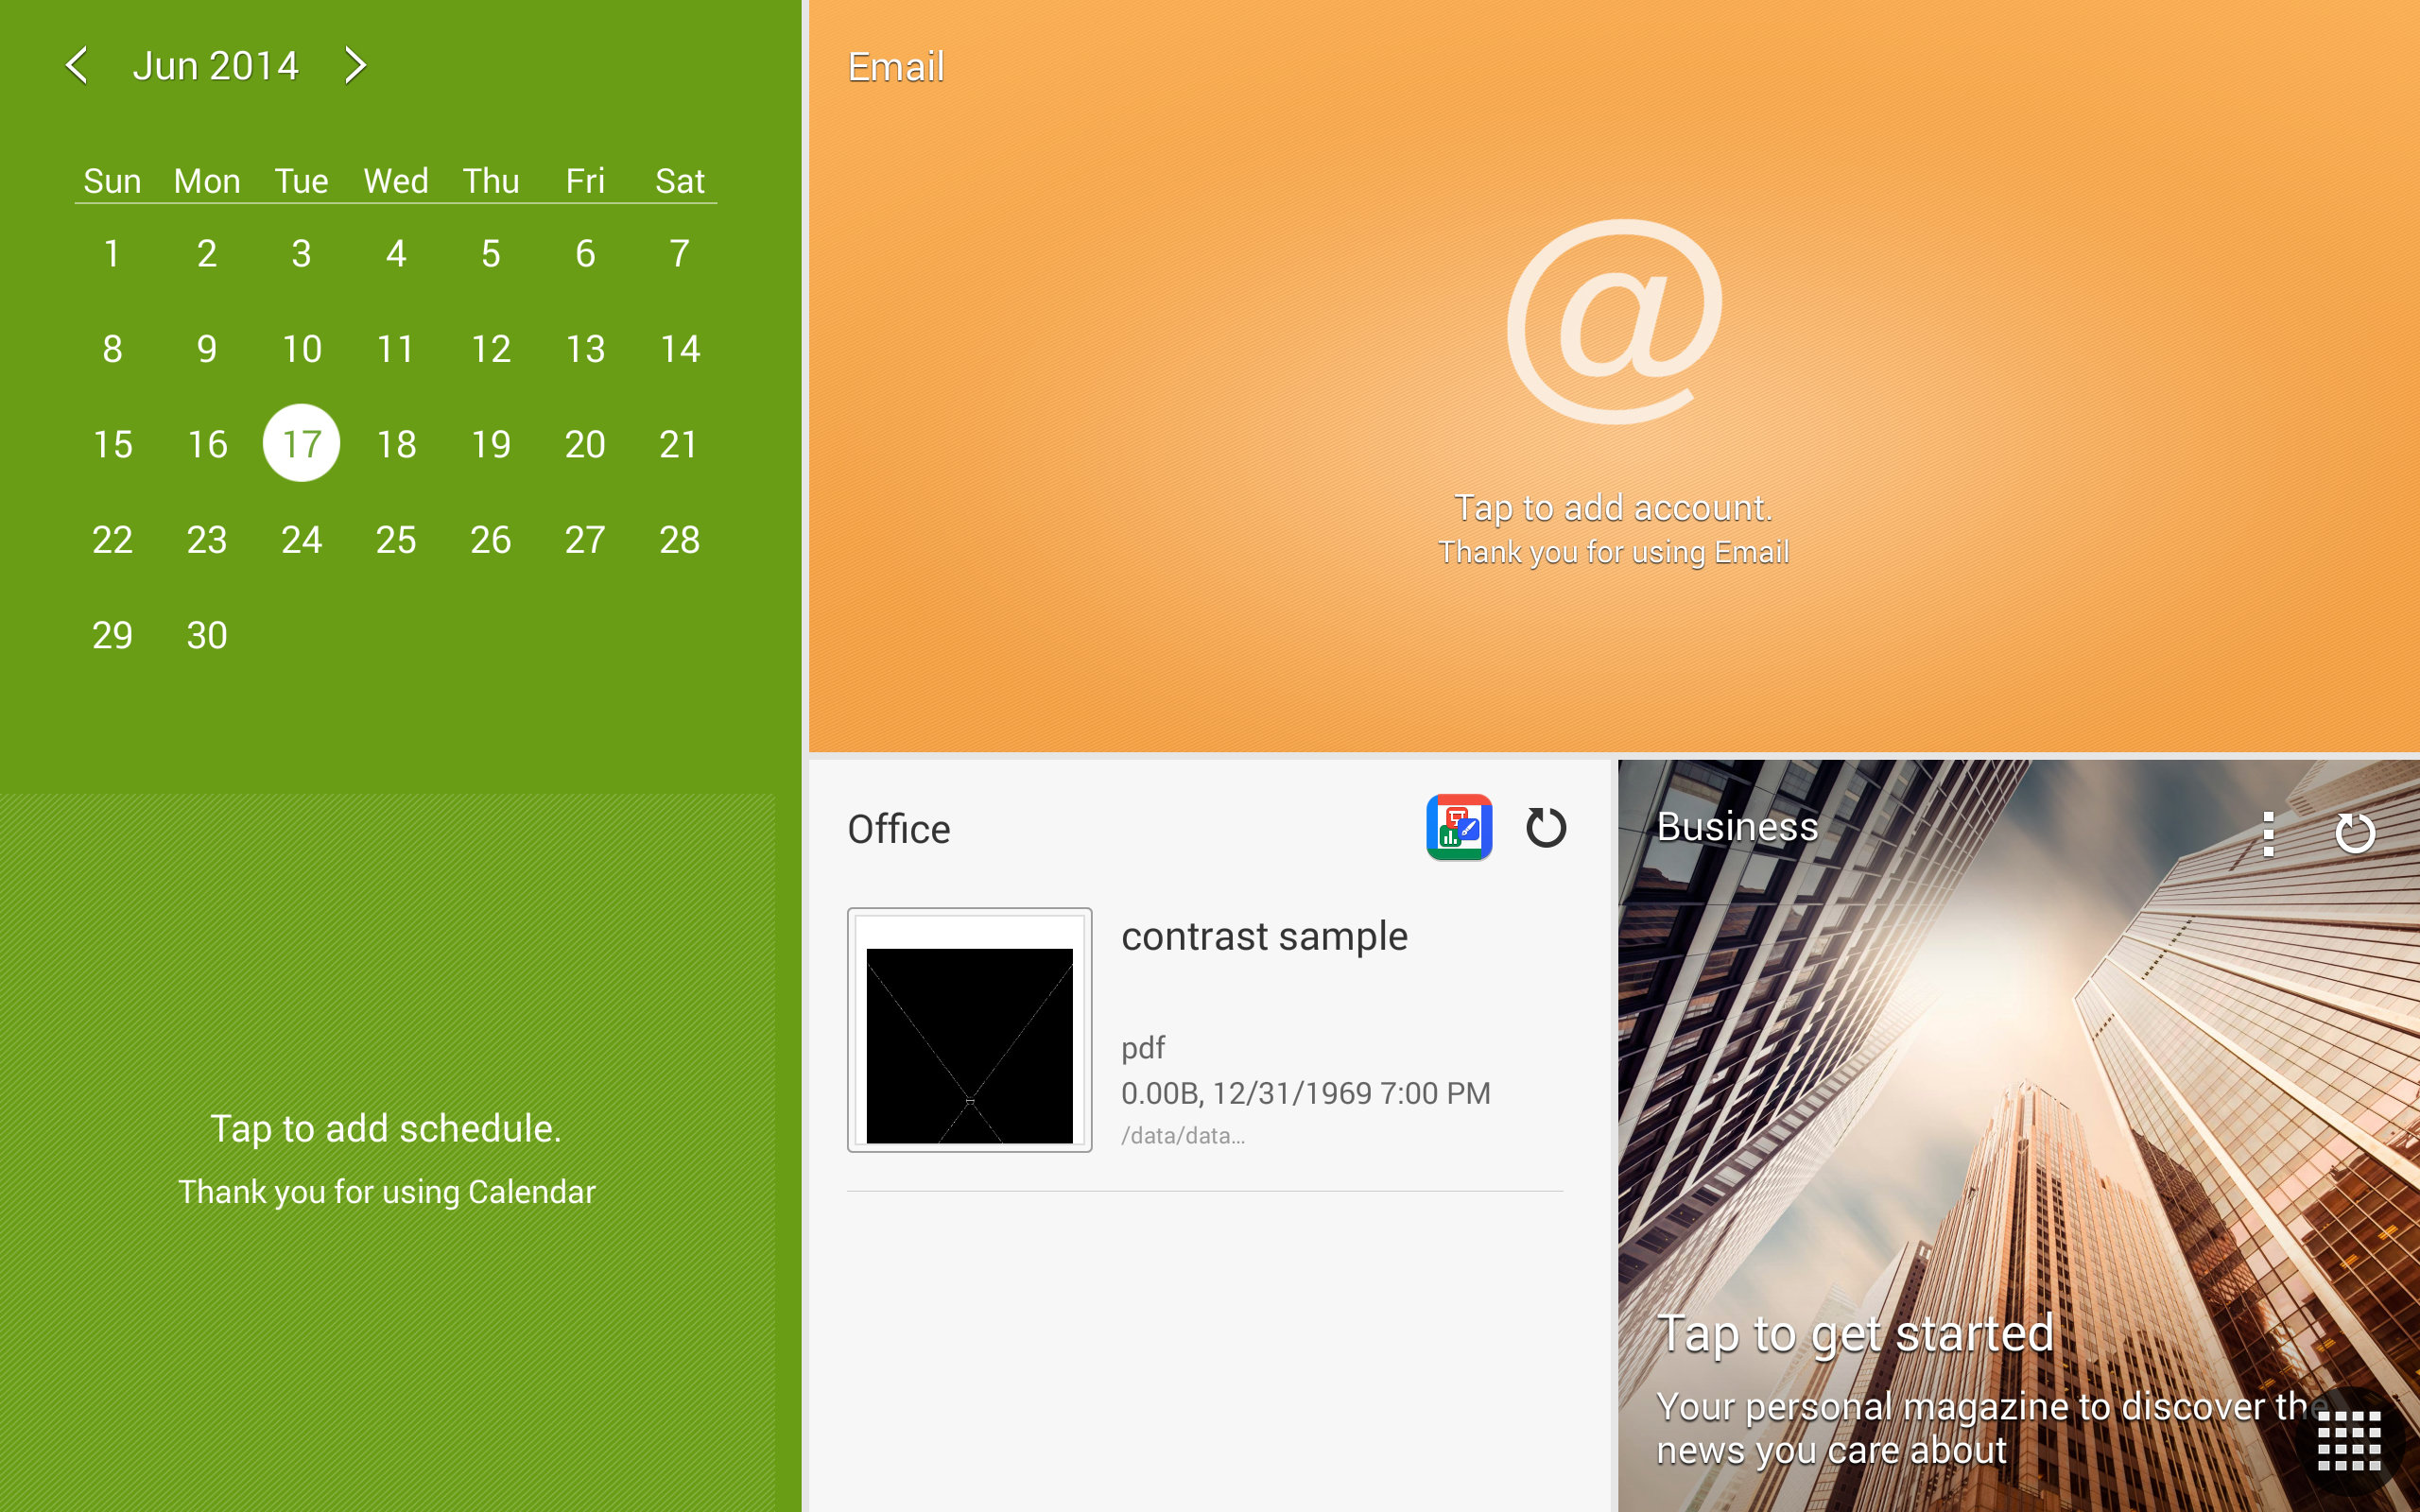 A screenshot of the Samsung Galaxy Note Pro's calendar screen.